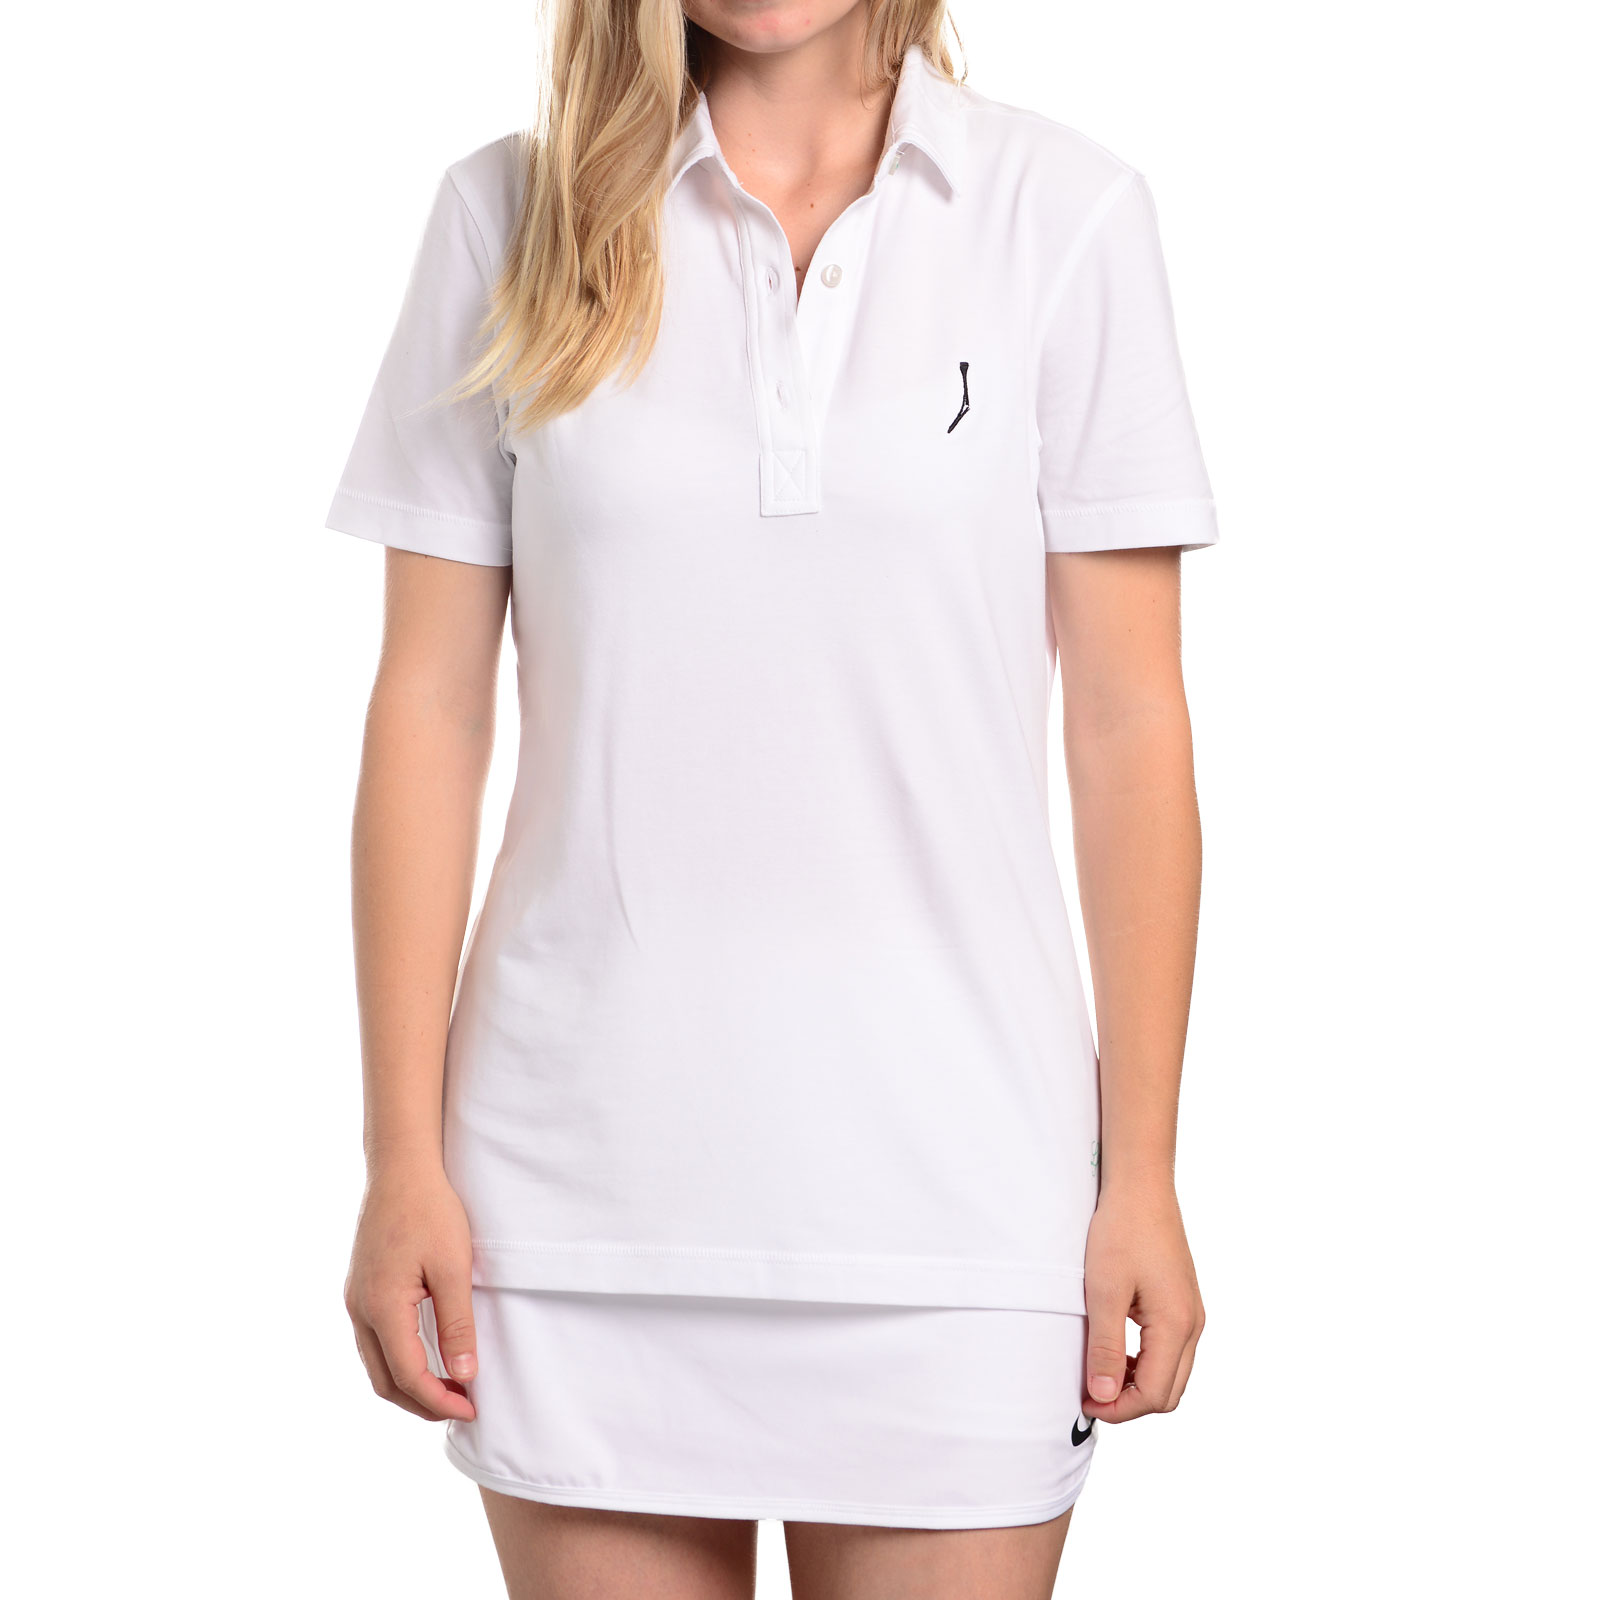 TGJ x Linksoul Women's Drytech Polo - White